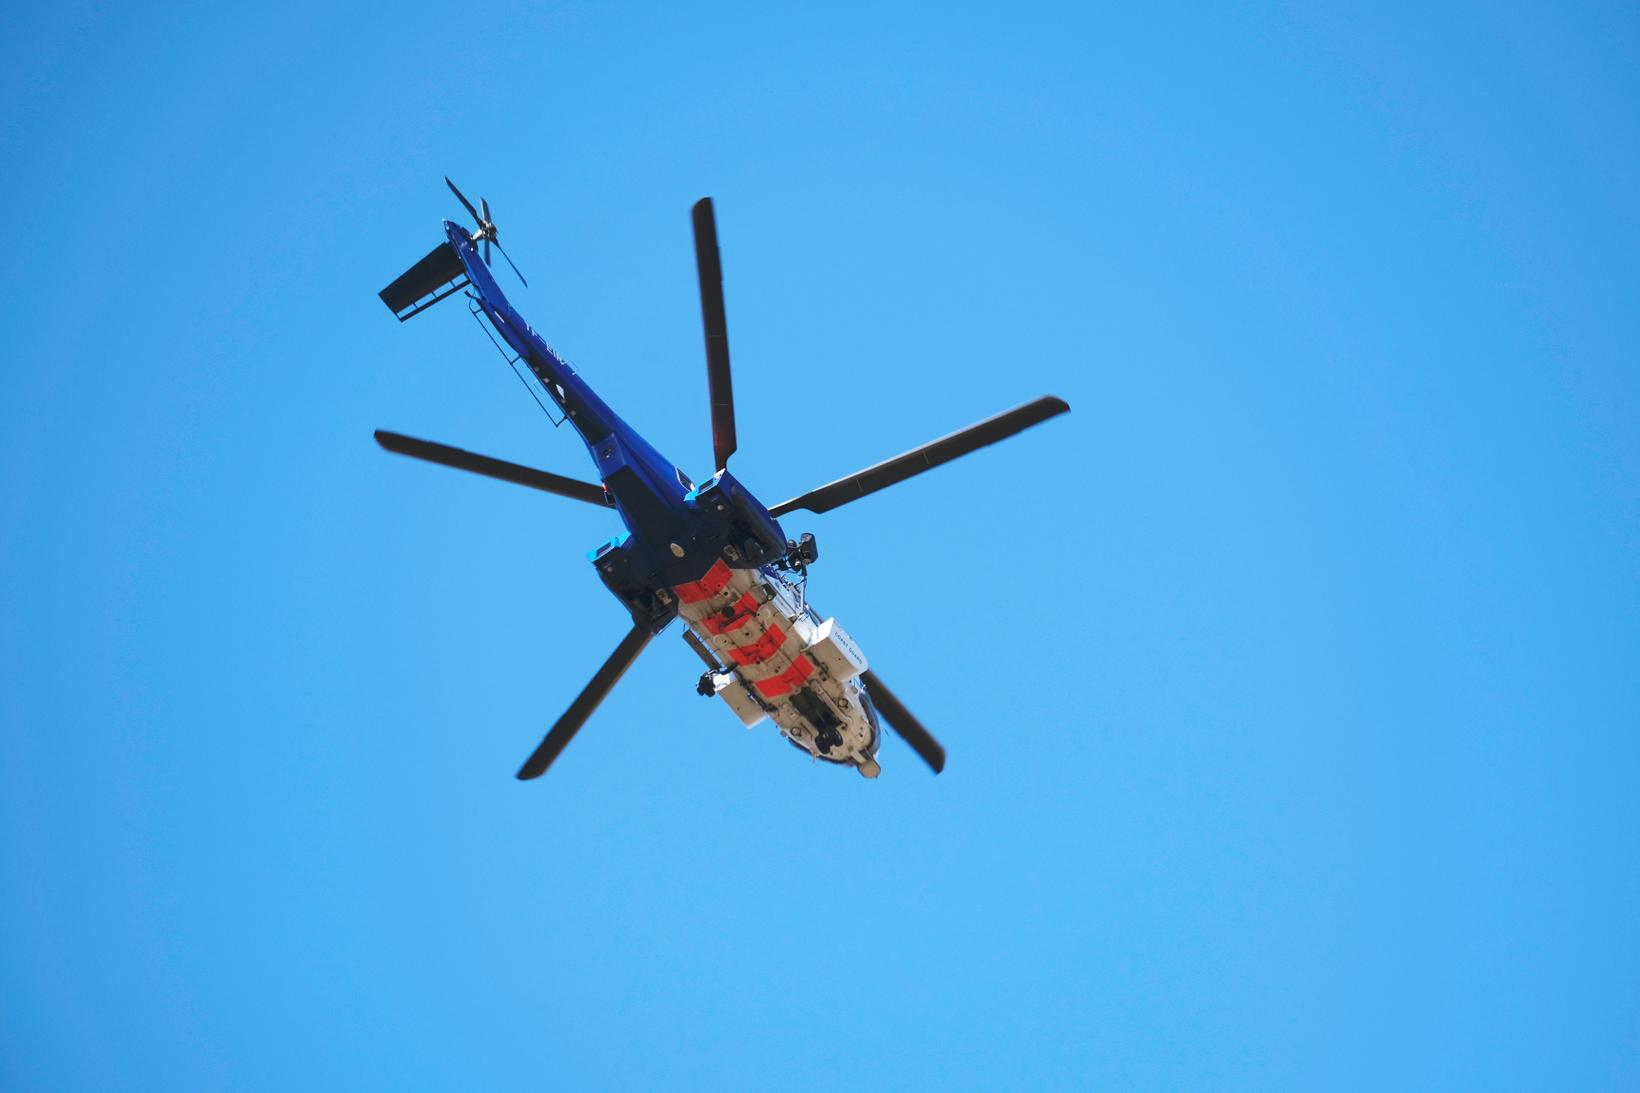 The Icelandic Coast Guard helicopter.